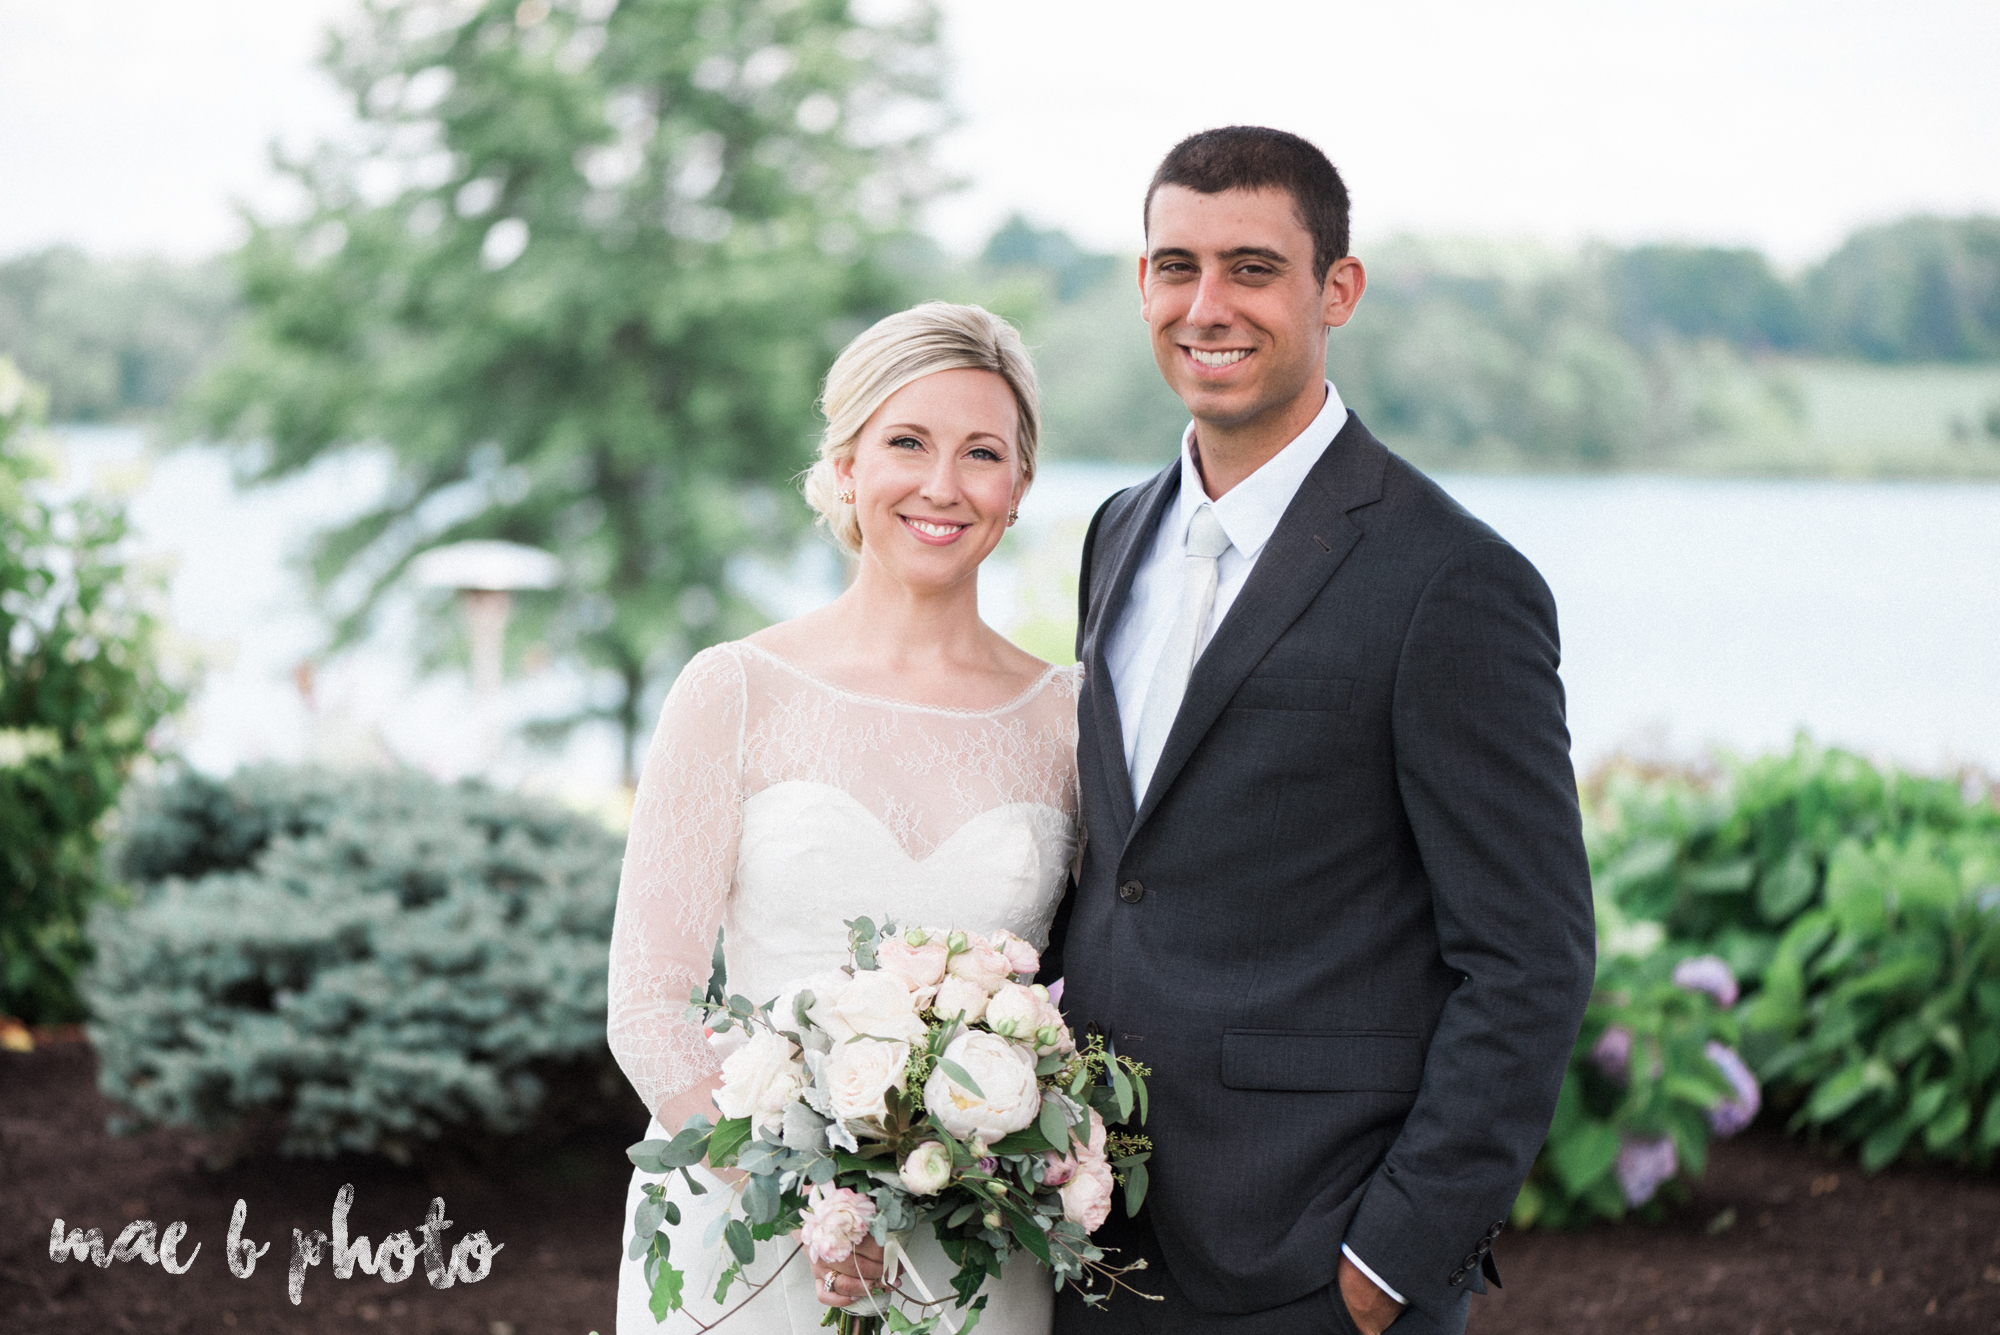 emily and michael's industrial chic summer country club wedding at the lake club in poland ohio photographed by cleveland wedding photographer mae b photo-53.jpg